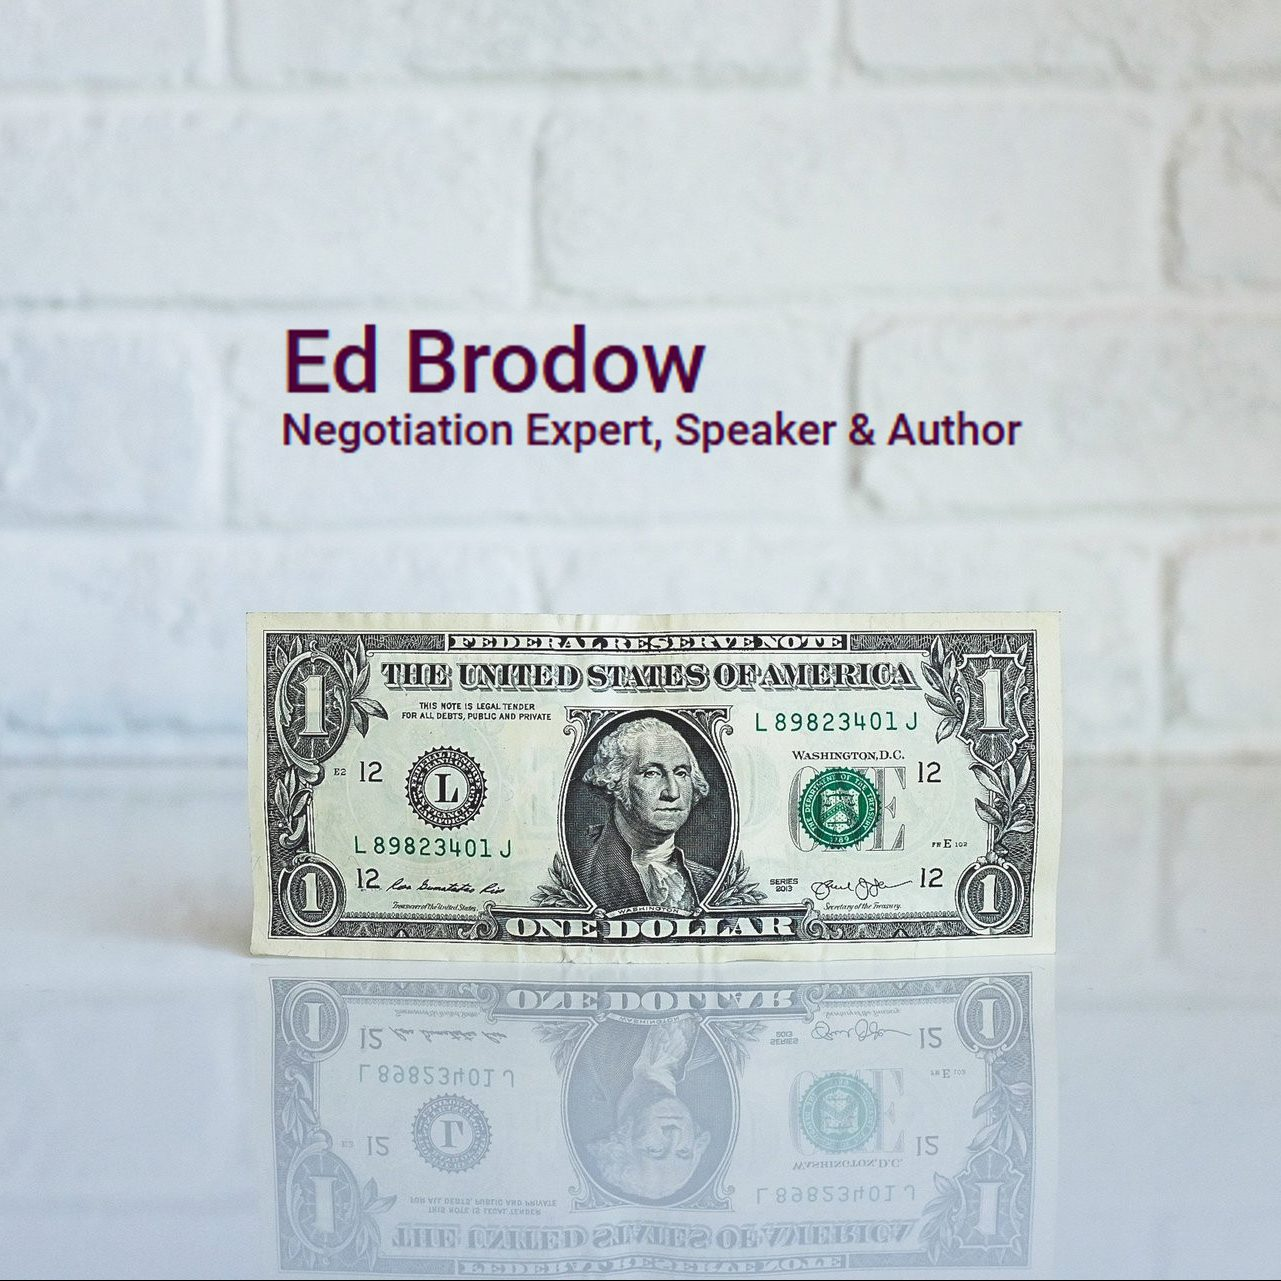 Ed Brodow - business negotiation